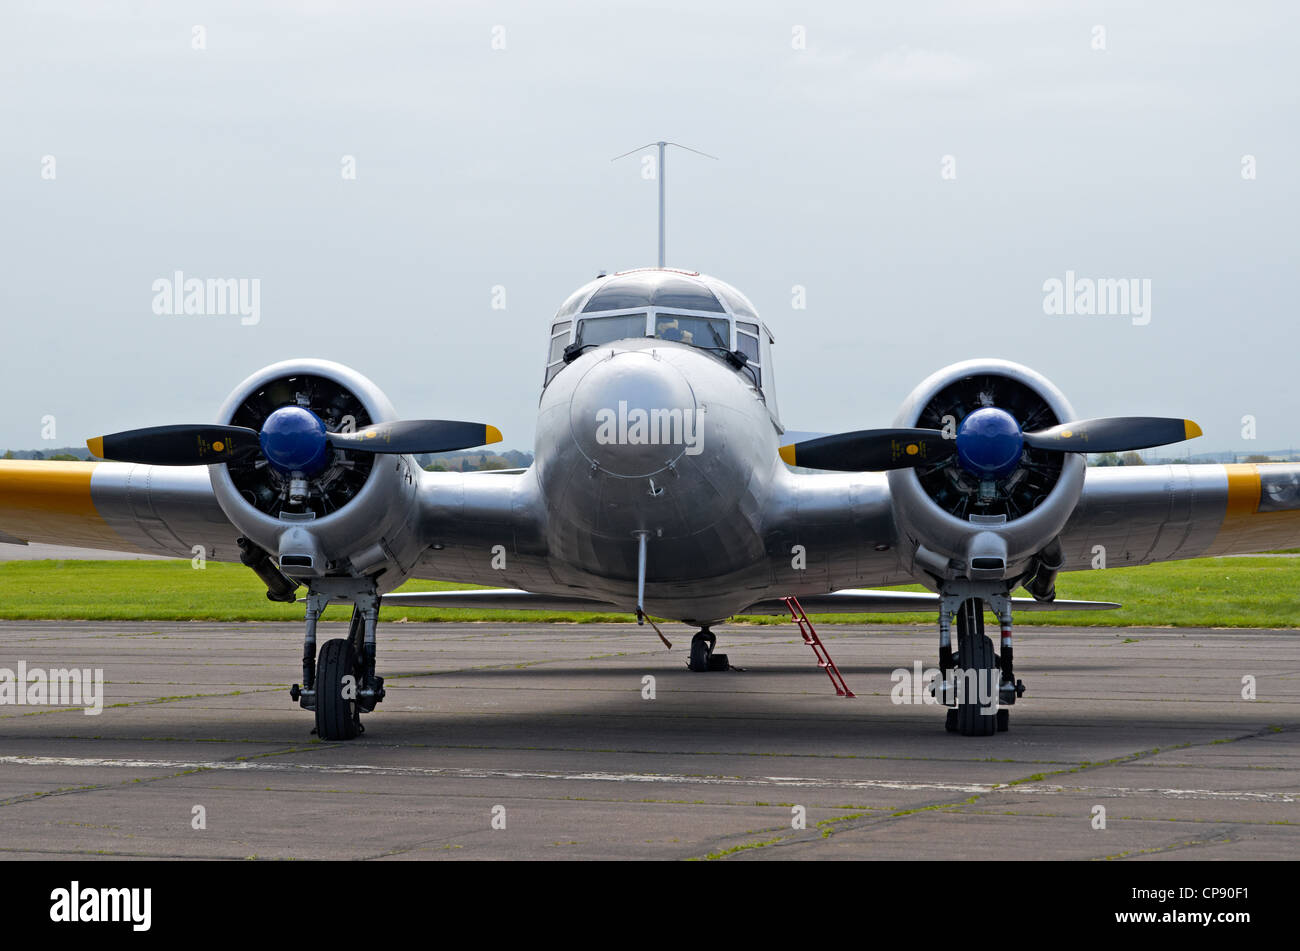 Avro Anson C.12 aircraft built 1935-1952 by Avro and also in Canada. Multi-engine trainer. Display Abingdon Airshow - Stock Image